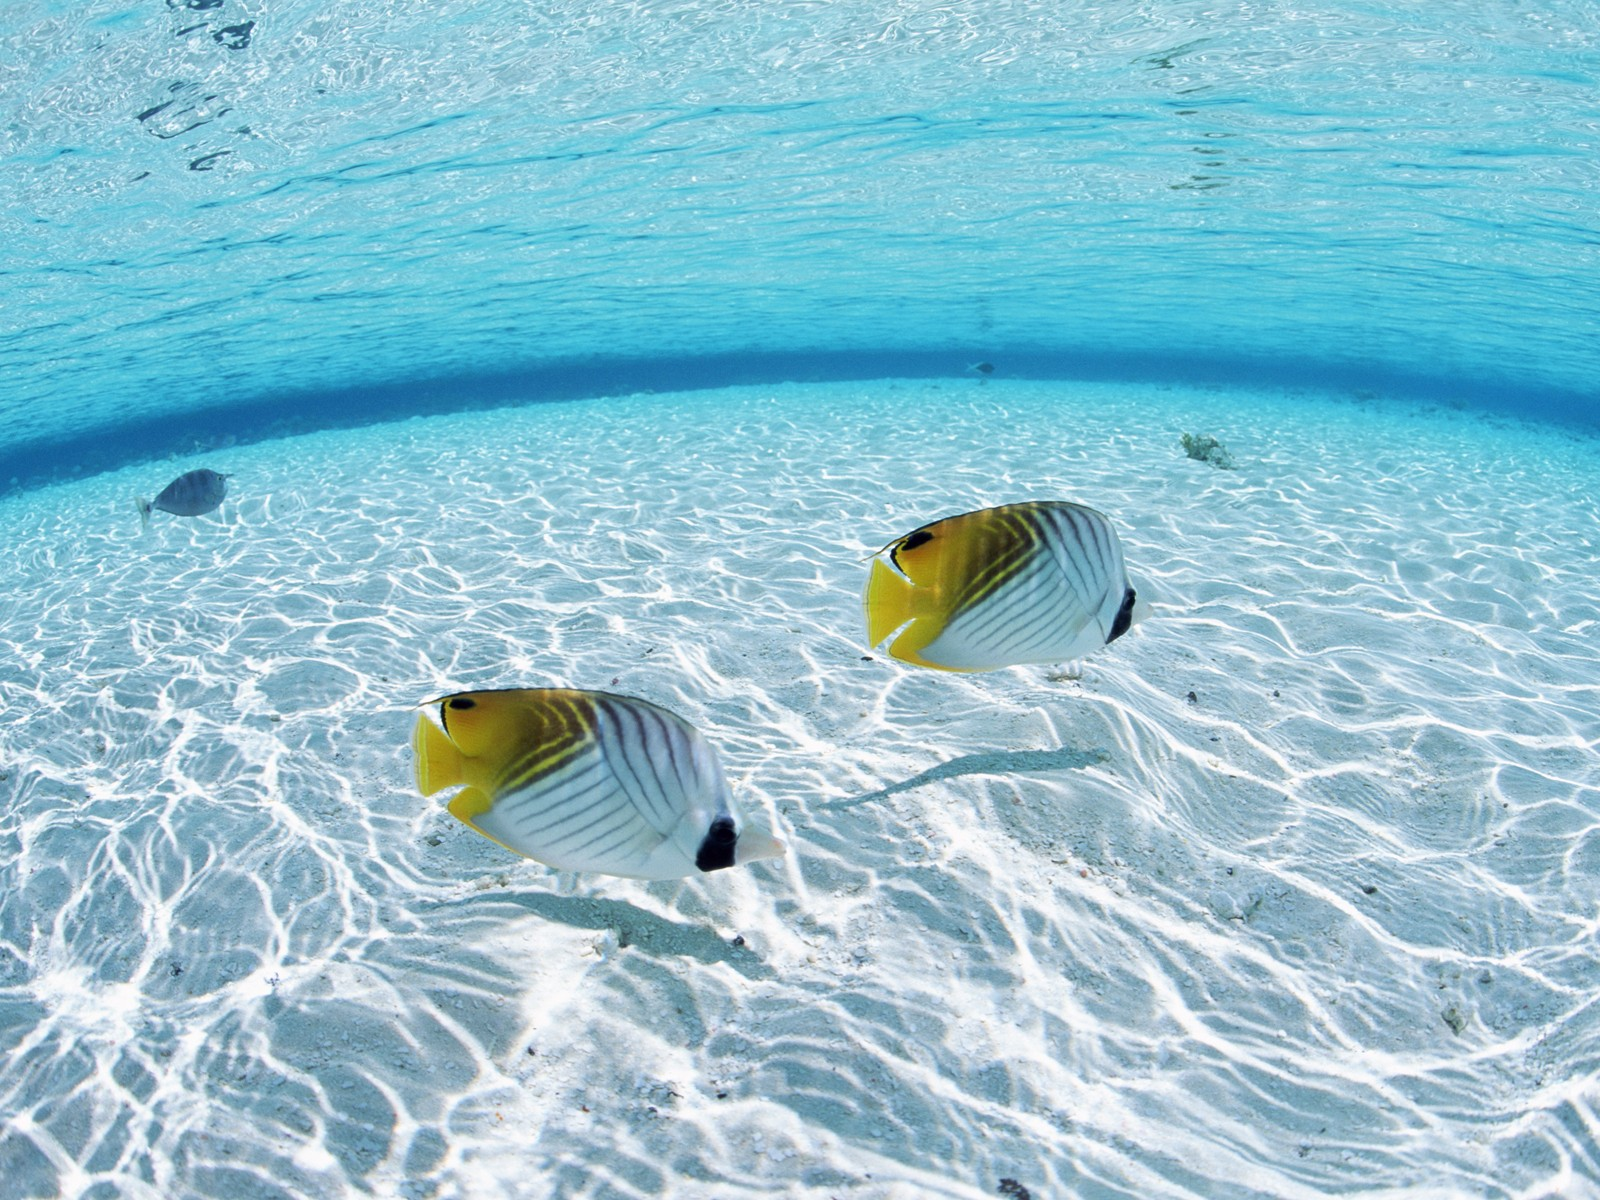 Maldives Water and Fish Backgrounds